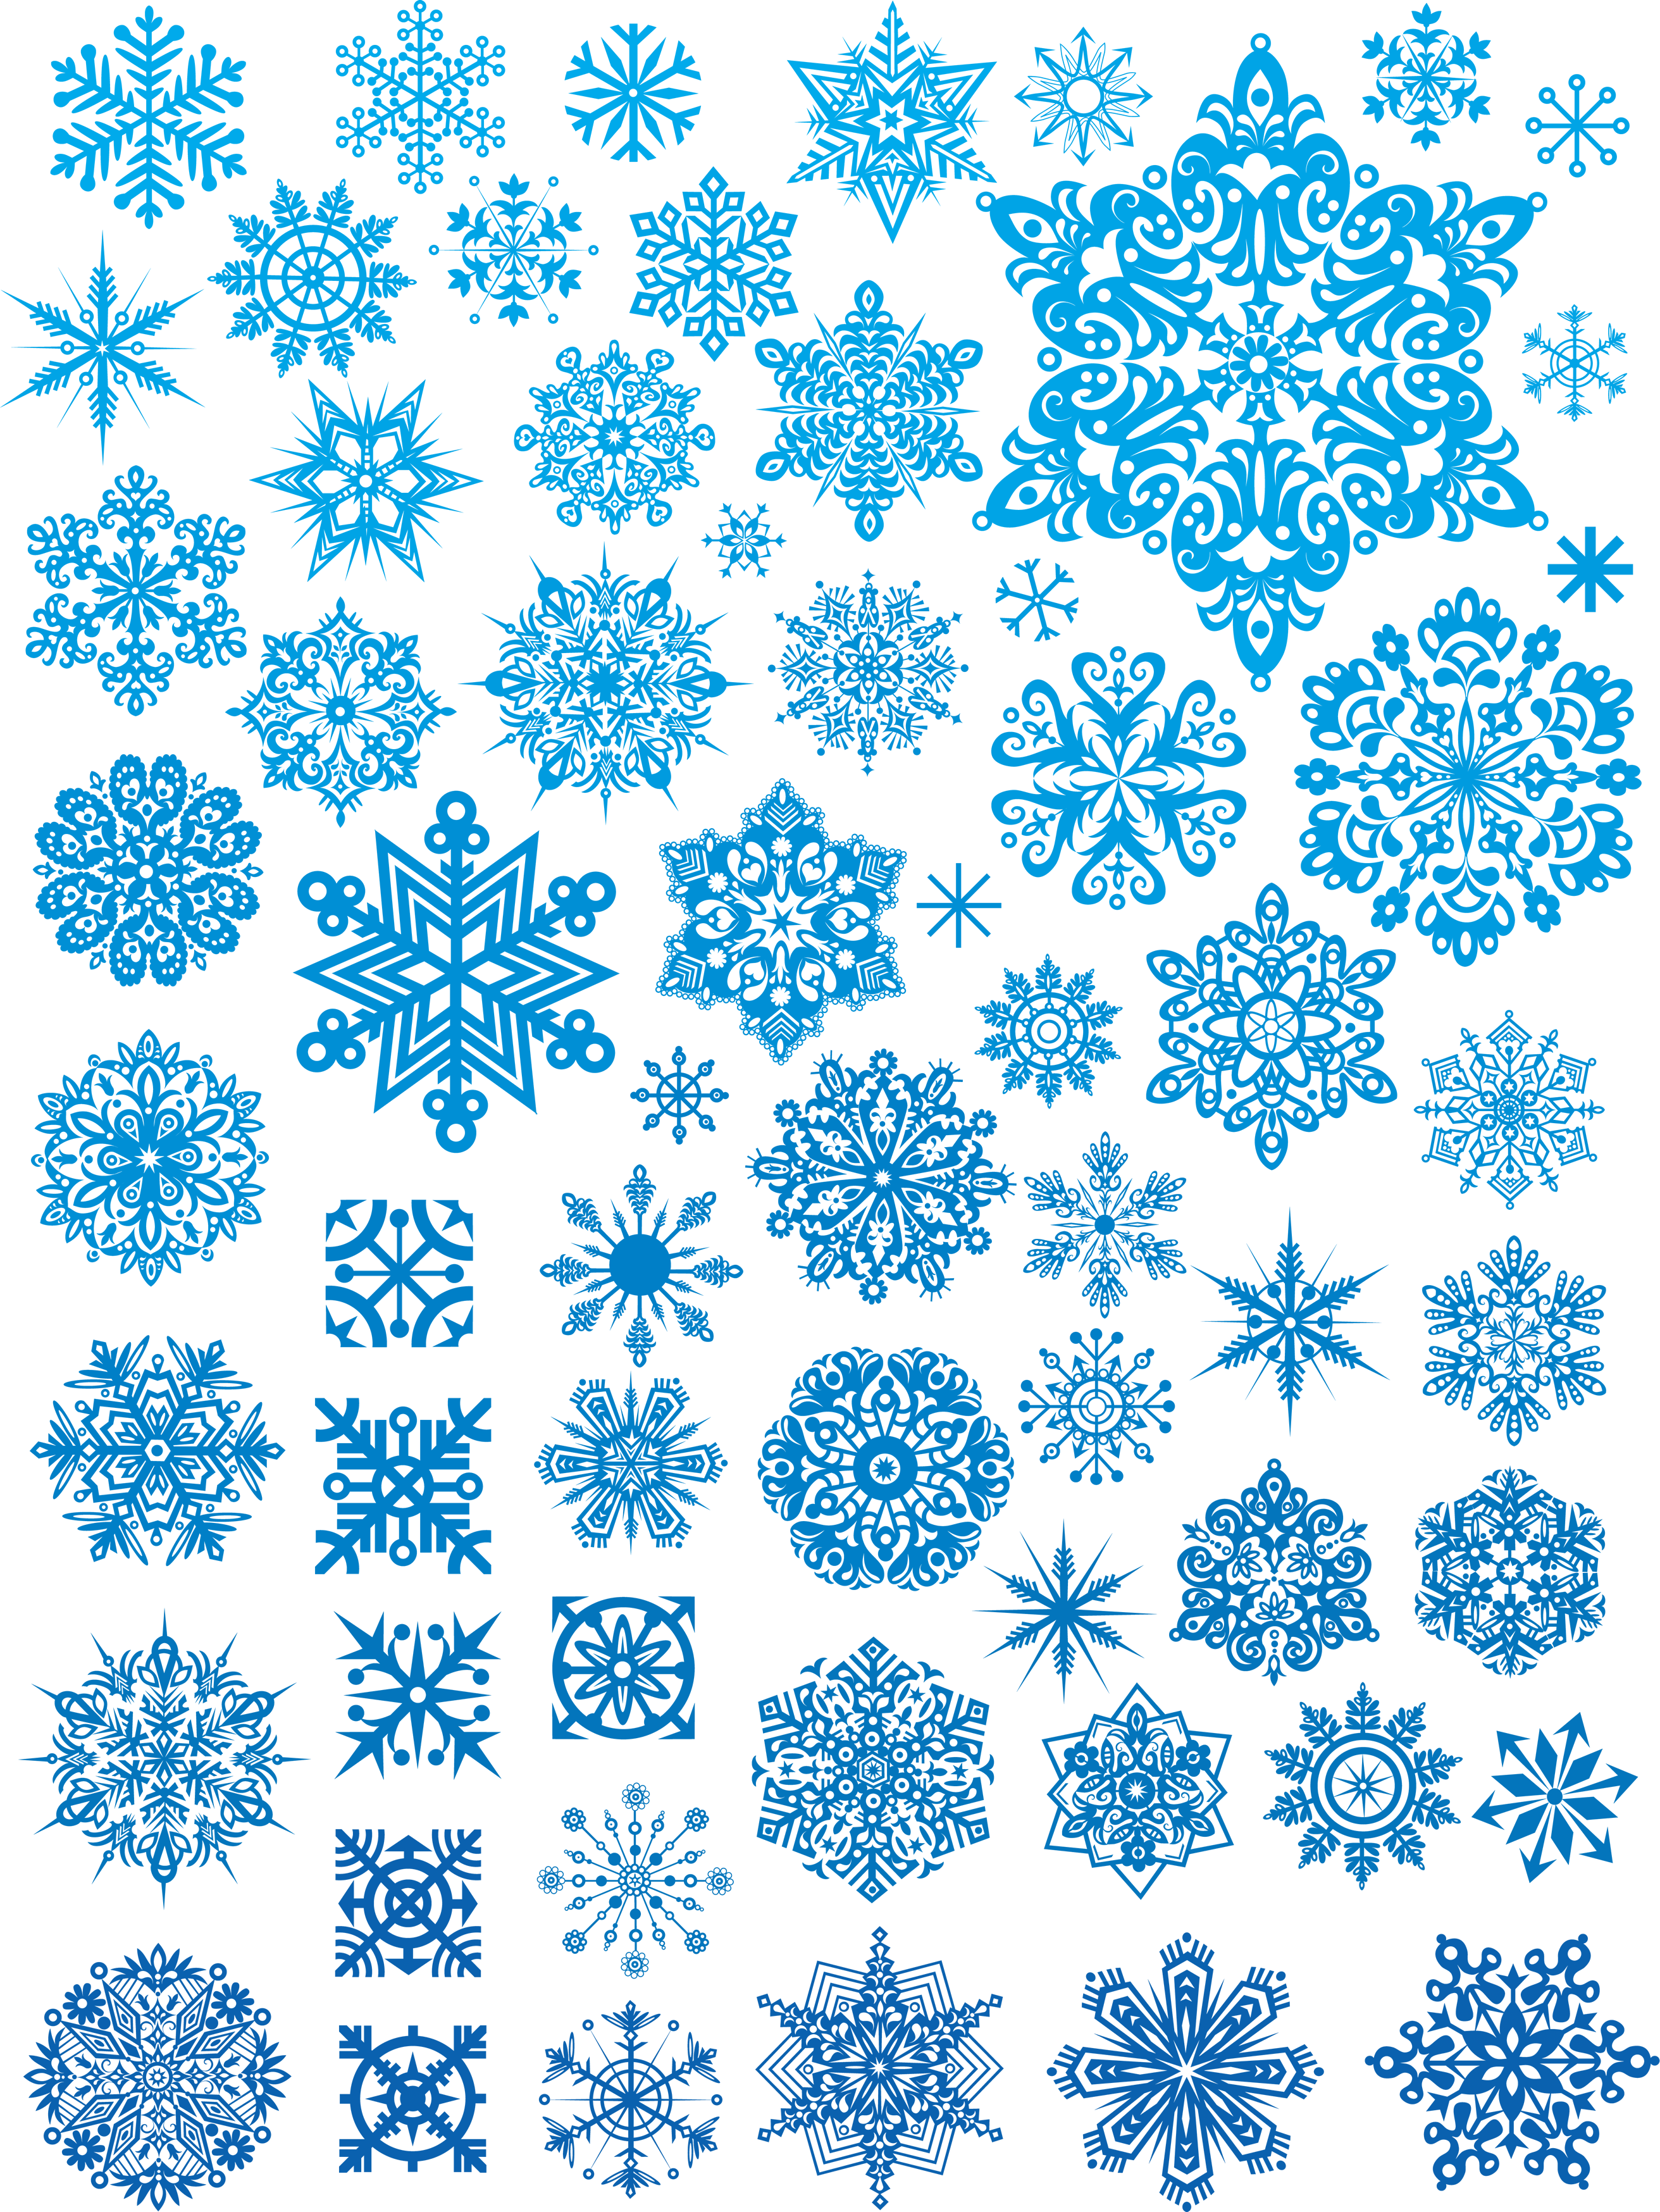 Christmas pattern png. Snowflakes image pinterest tattoo